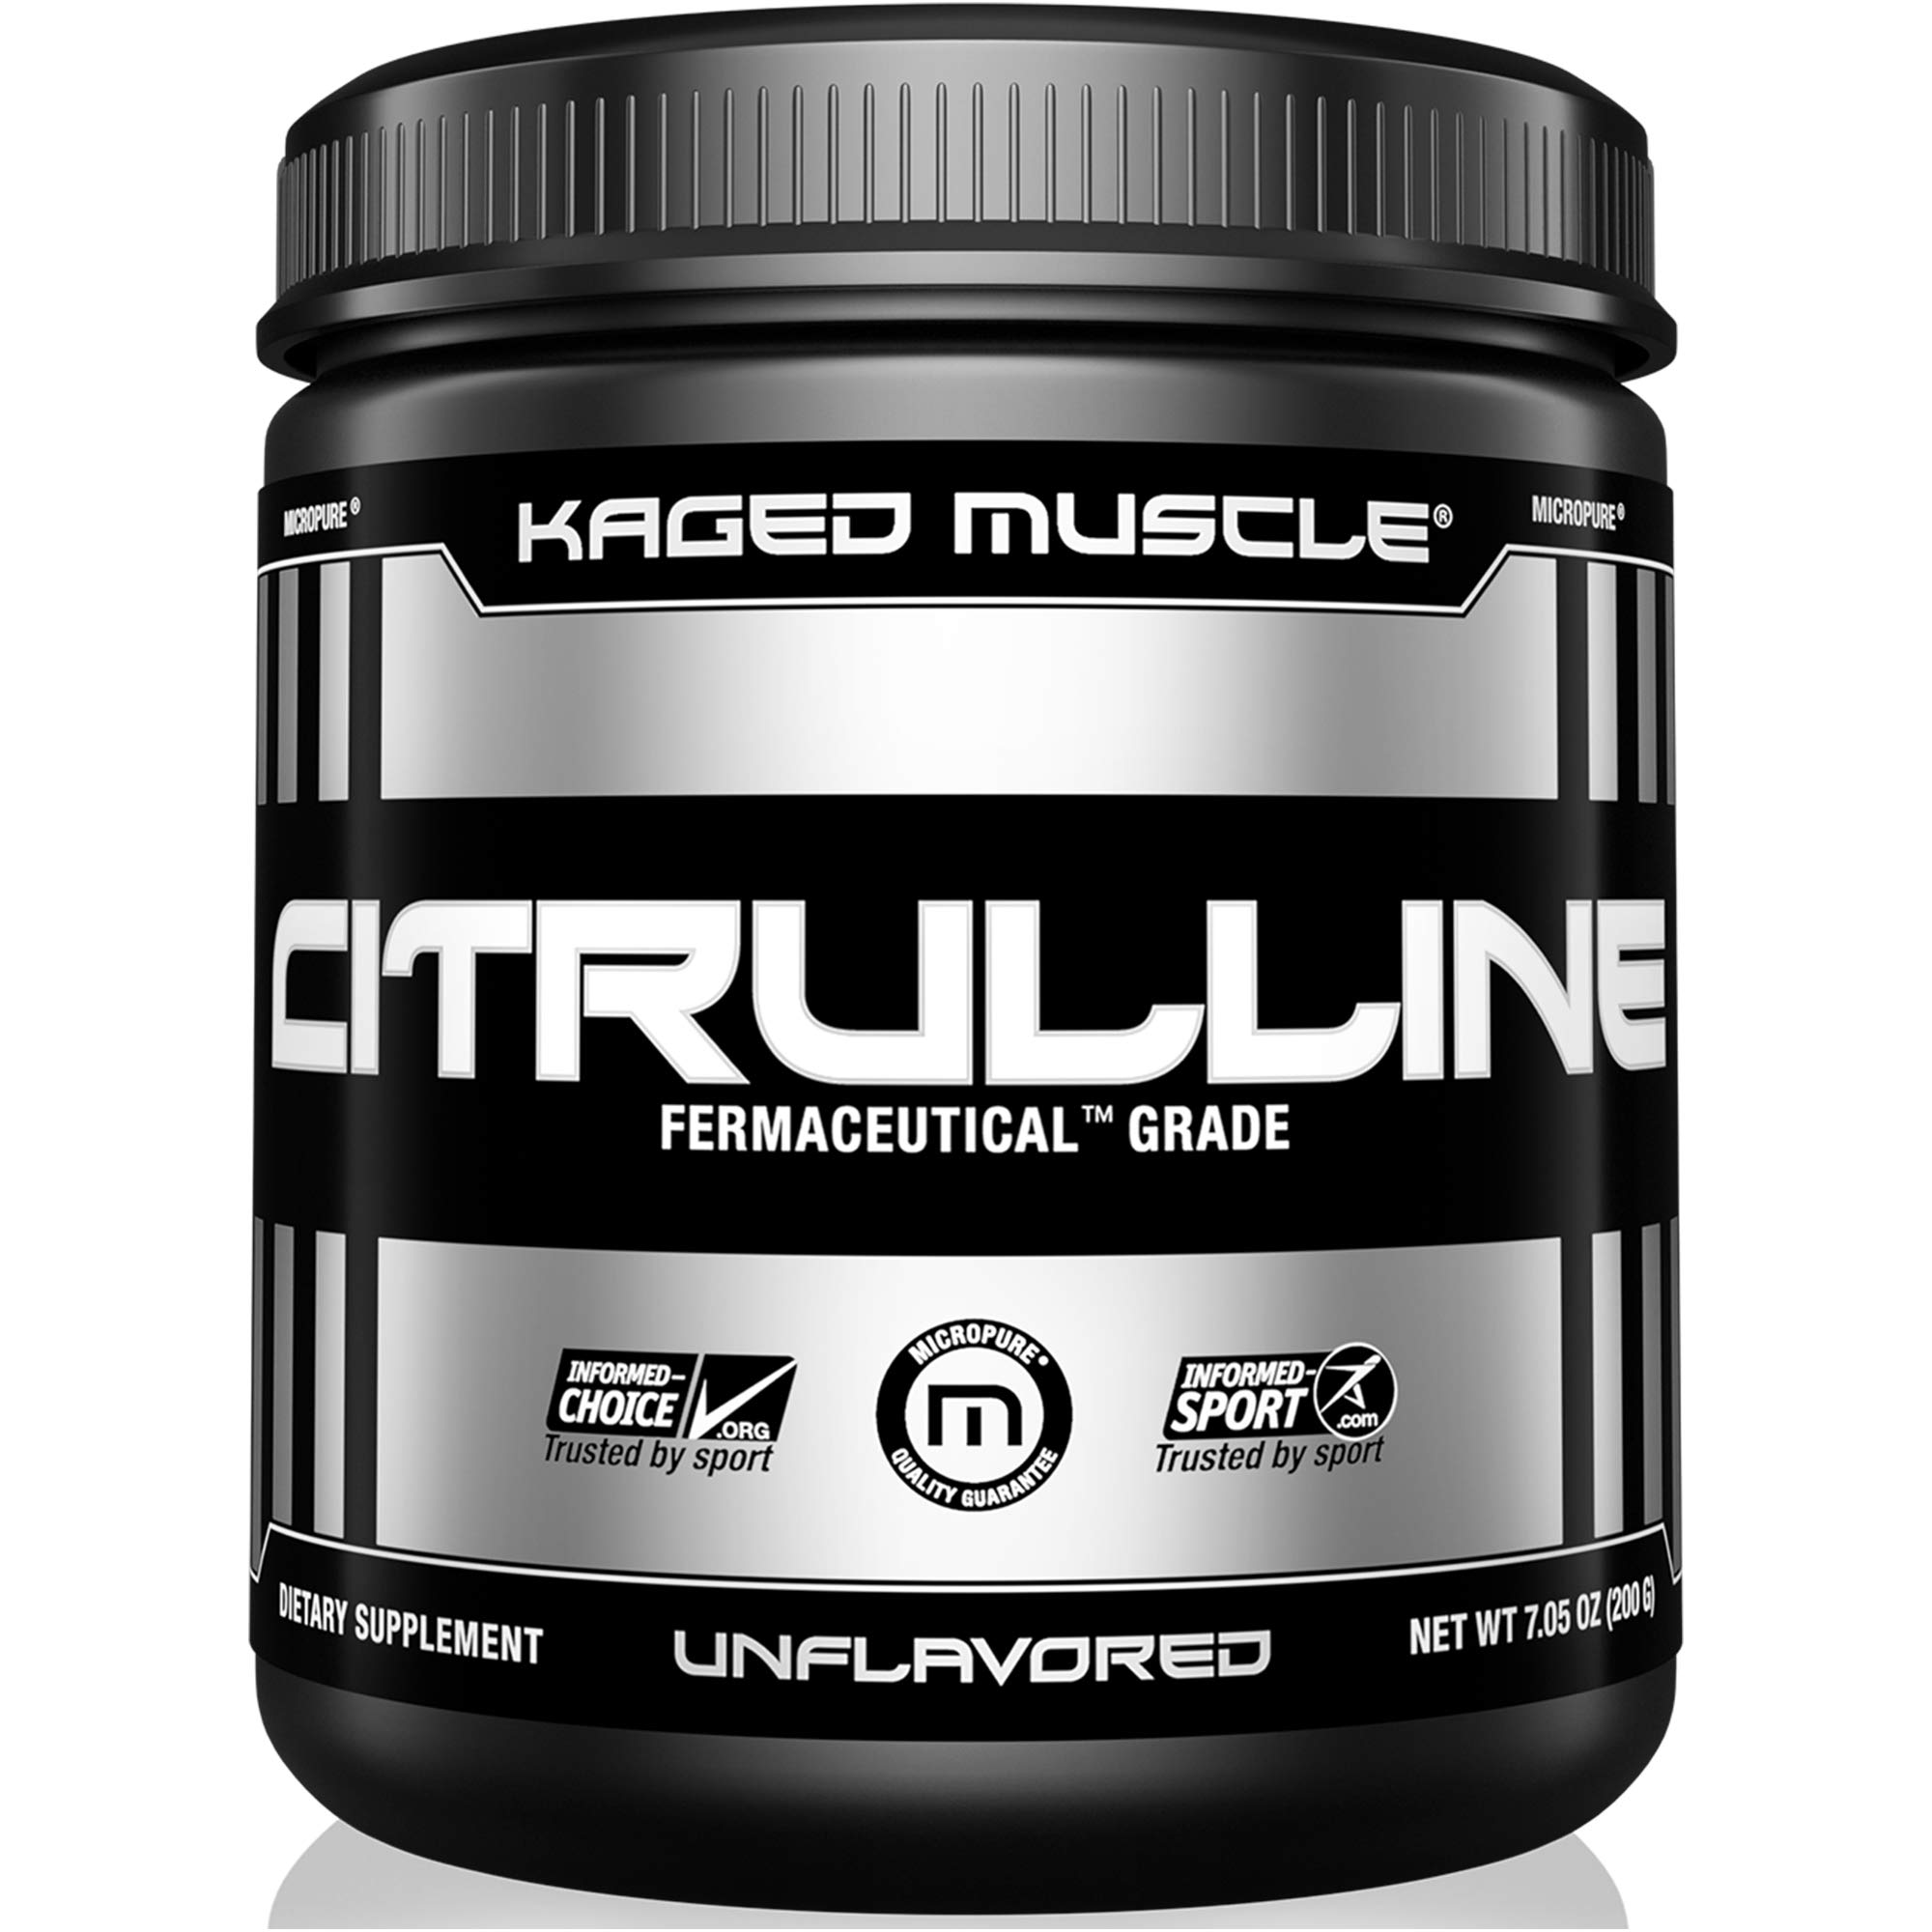 KAGED MUSCLE, Premium L-Citrulline Powder, Enhance Muscle Pumps, Improve Muscle Vascularity, Nitric Oxide Booster, Citrulline, Unflavored, 100 Servings by Kaged Muscle